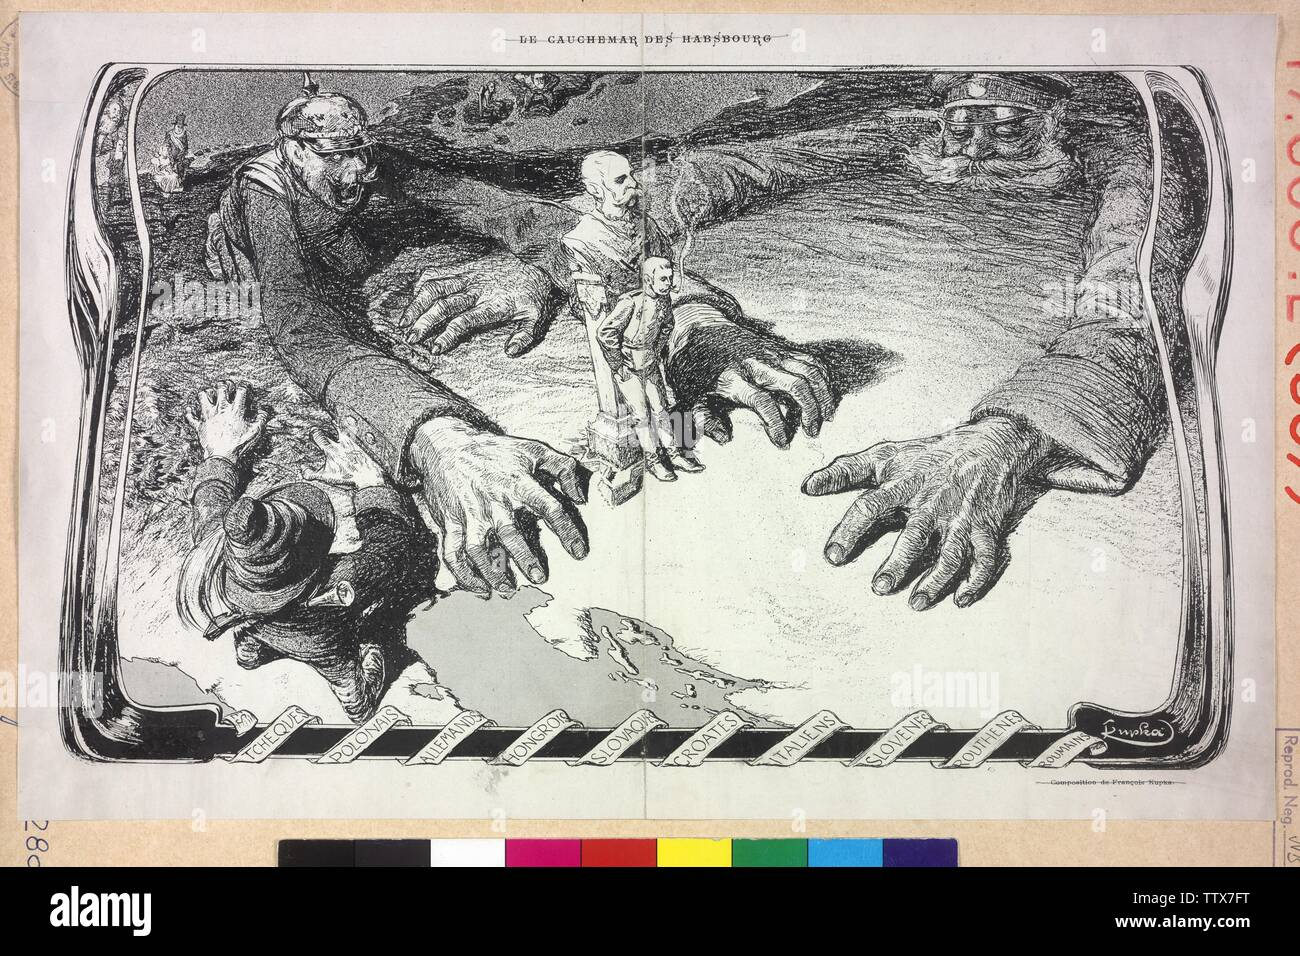 The incubus of the Habsburg ('Le Cauchemar des Habsbourg'), caricature on the Habsburg monarchy: Franz Ferdinand at the bust of Franz Joseph resting, beneath the map with the territory of the House of Habsburg, the of the poor man of a Russian and of a Prussian soldiers surround is, a Bersaglieri (Italian infantry) grab to Tyrol. detail from the French journal 'Cocorico' (1901), Additional-Rights-Clearance-Info-Not-Available - Stock Image